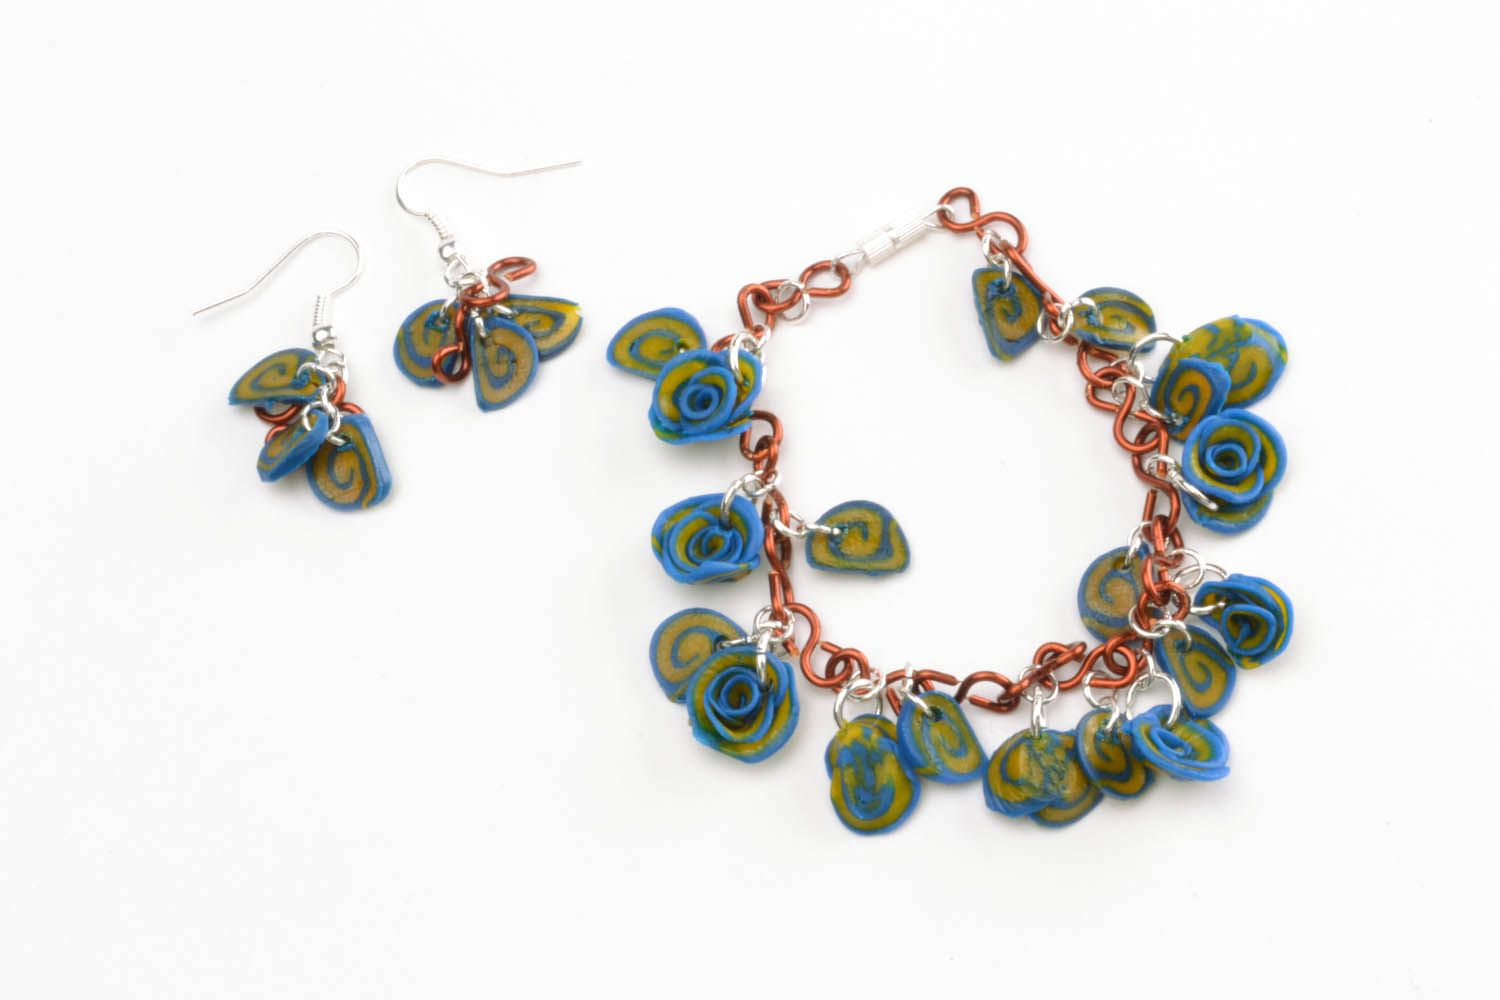 Polymer clay earrings and bracelet photo 4